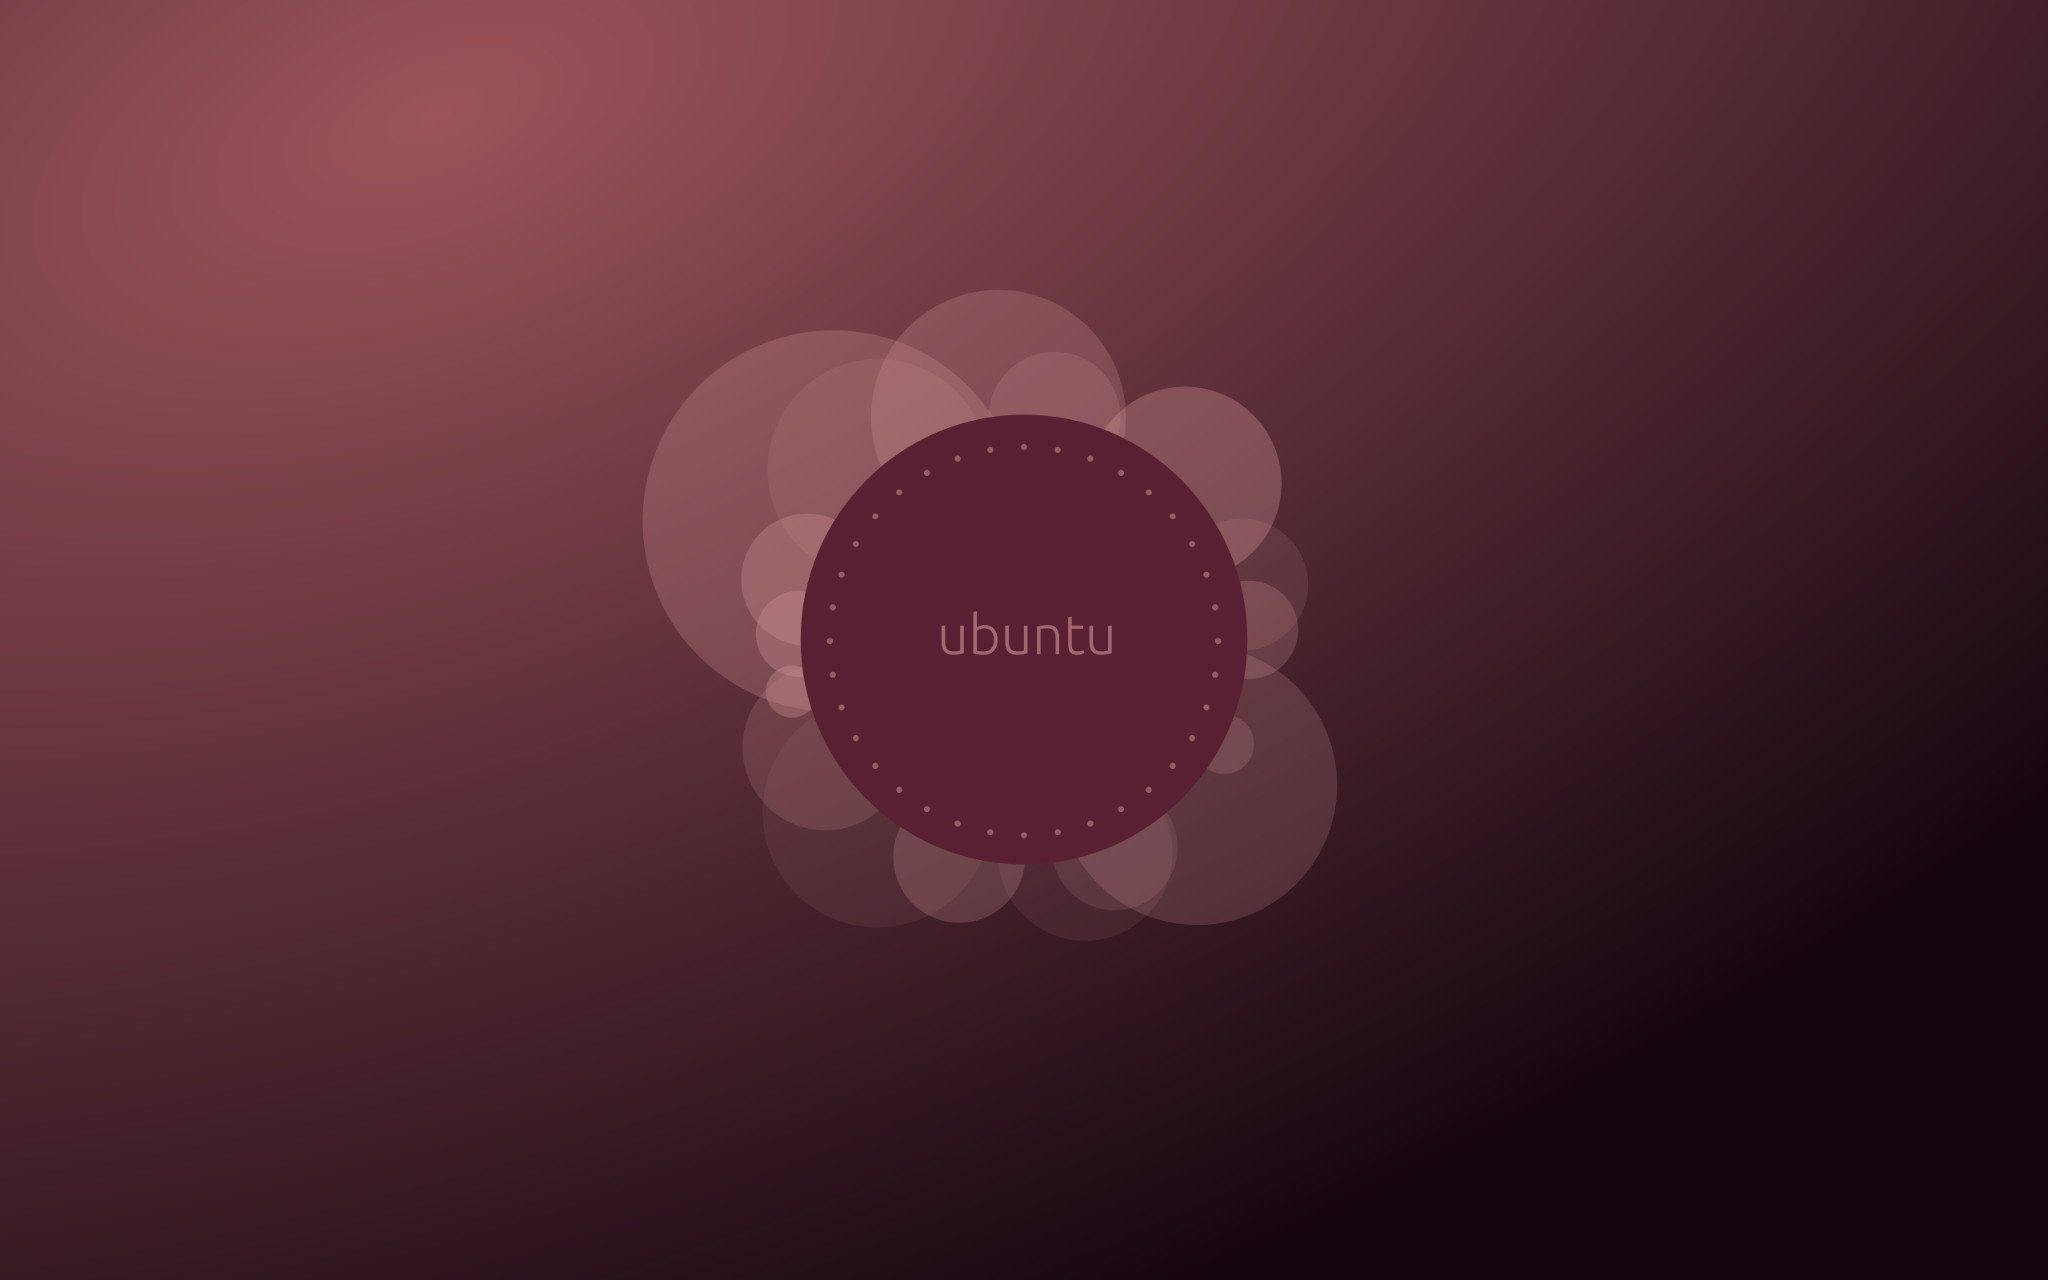 wallpaper ubuntu 1204 2048x1280